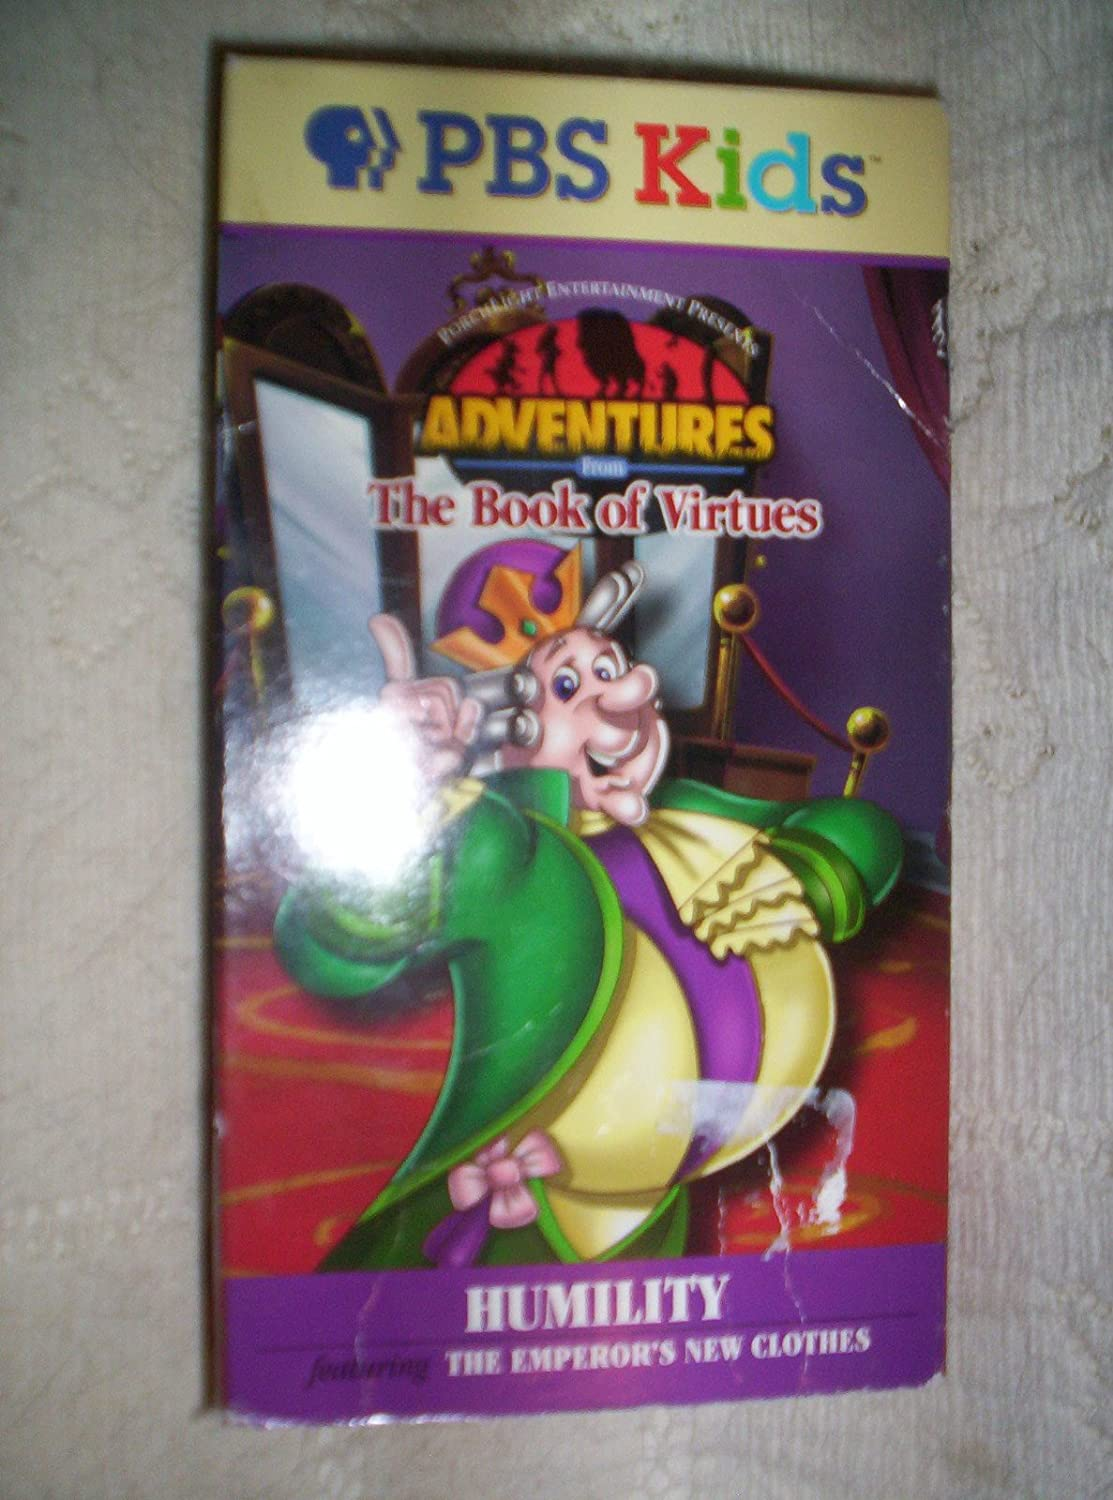 Adventures from the Book of Virtues: Humility [VHS]